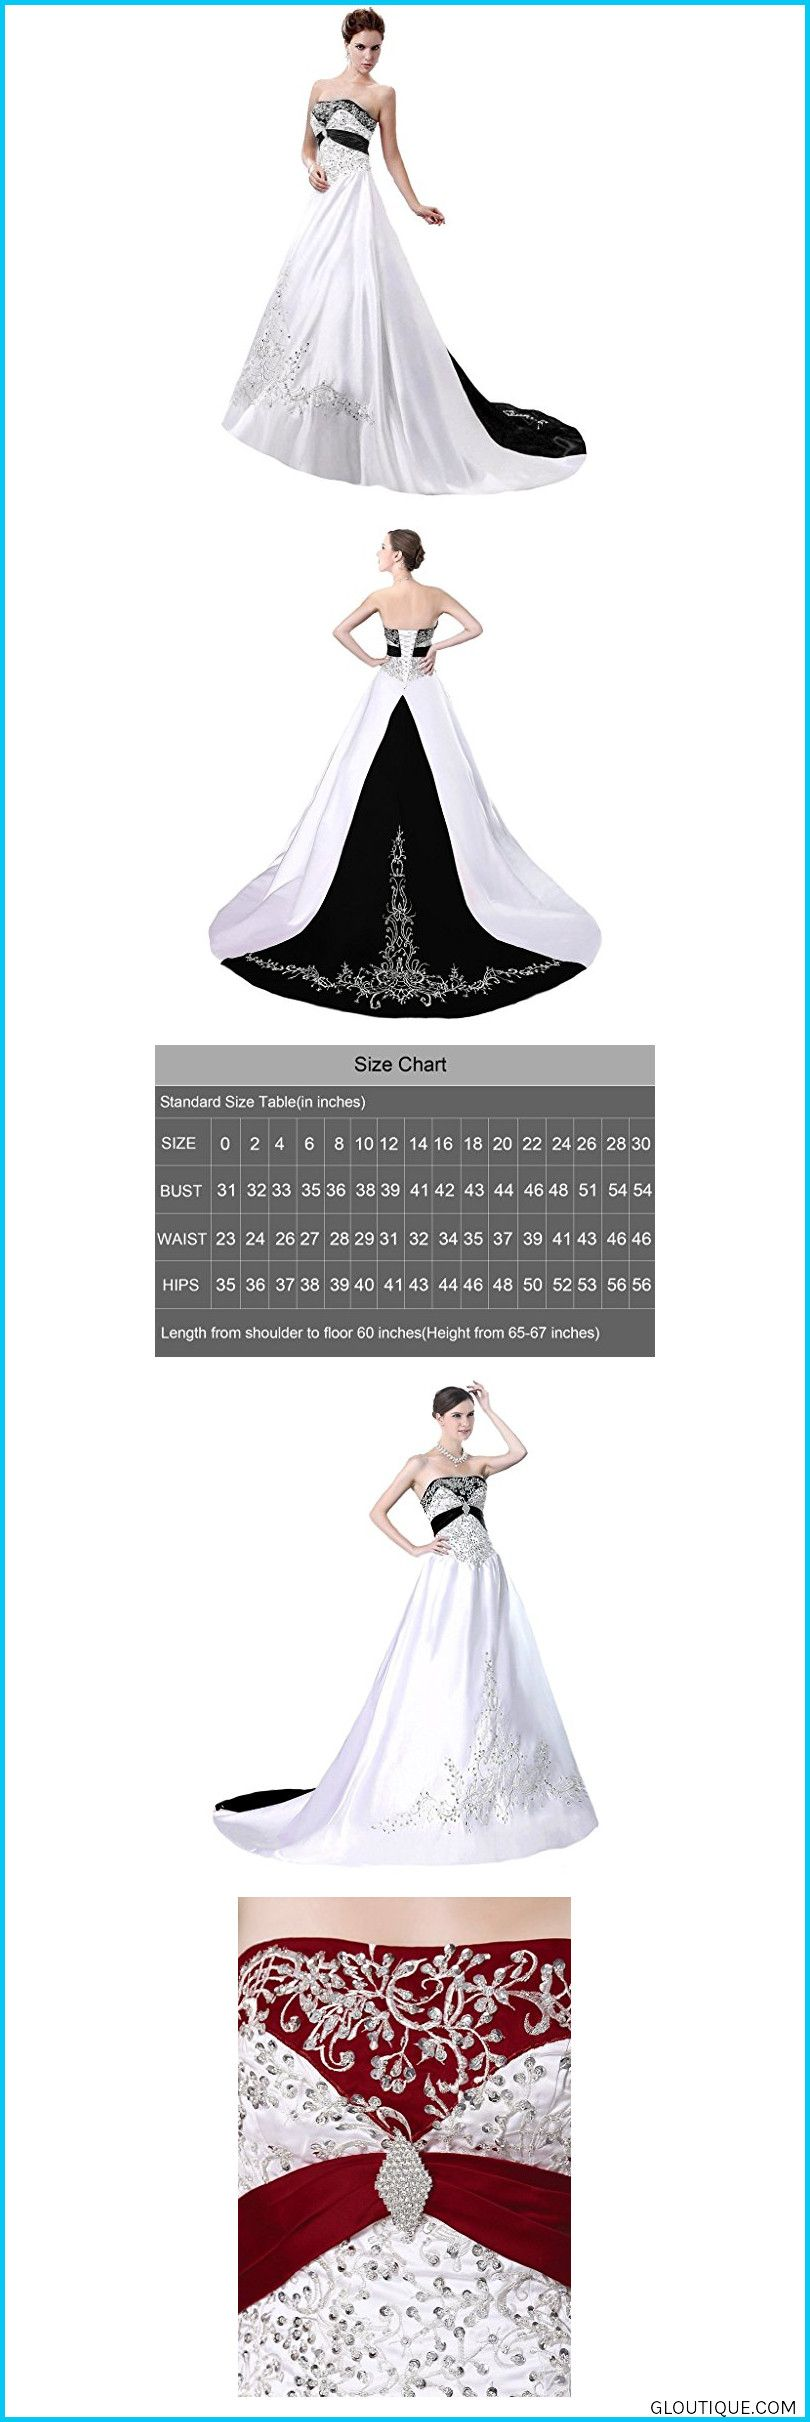 eab5991b58f ... occassion dresses often run smaller than your daily dresses Strapless  Embroidery S fashionSnowskite Women s Strapless Satin Embroidery Wedding  Dress ...